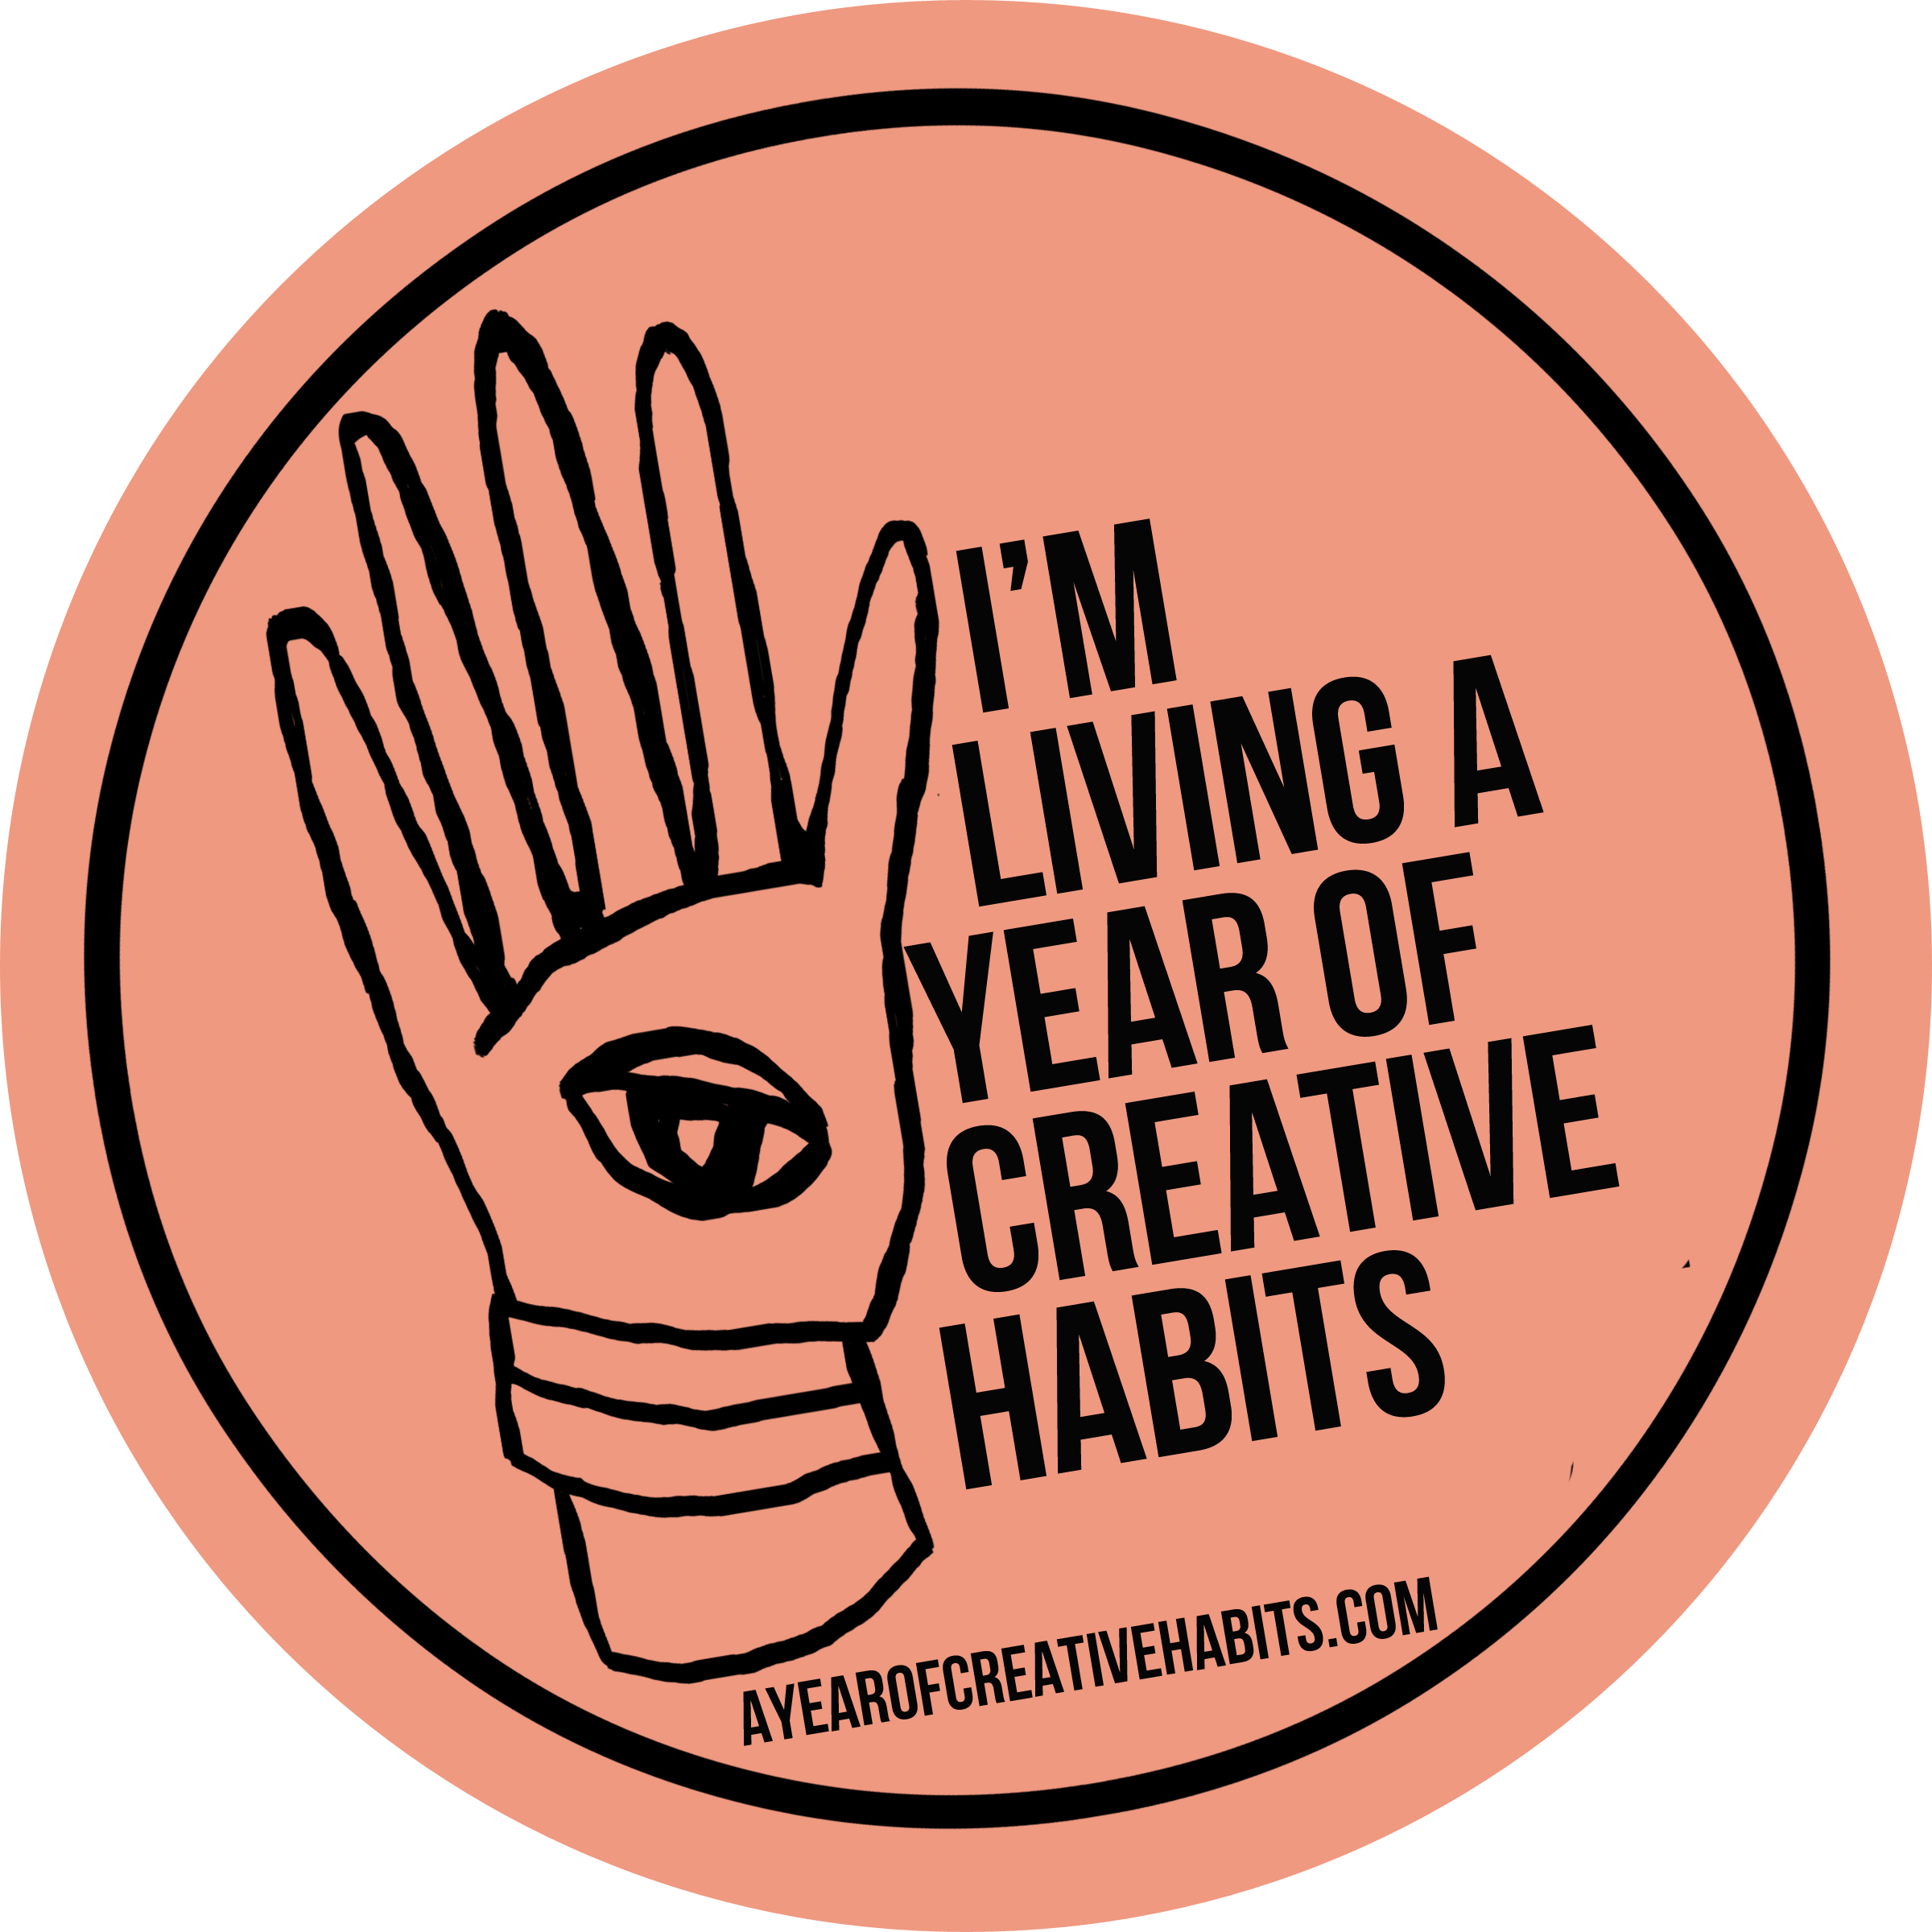 I'm living a year of creative habits!